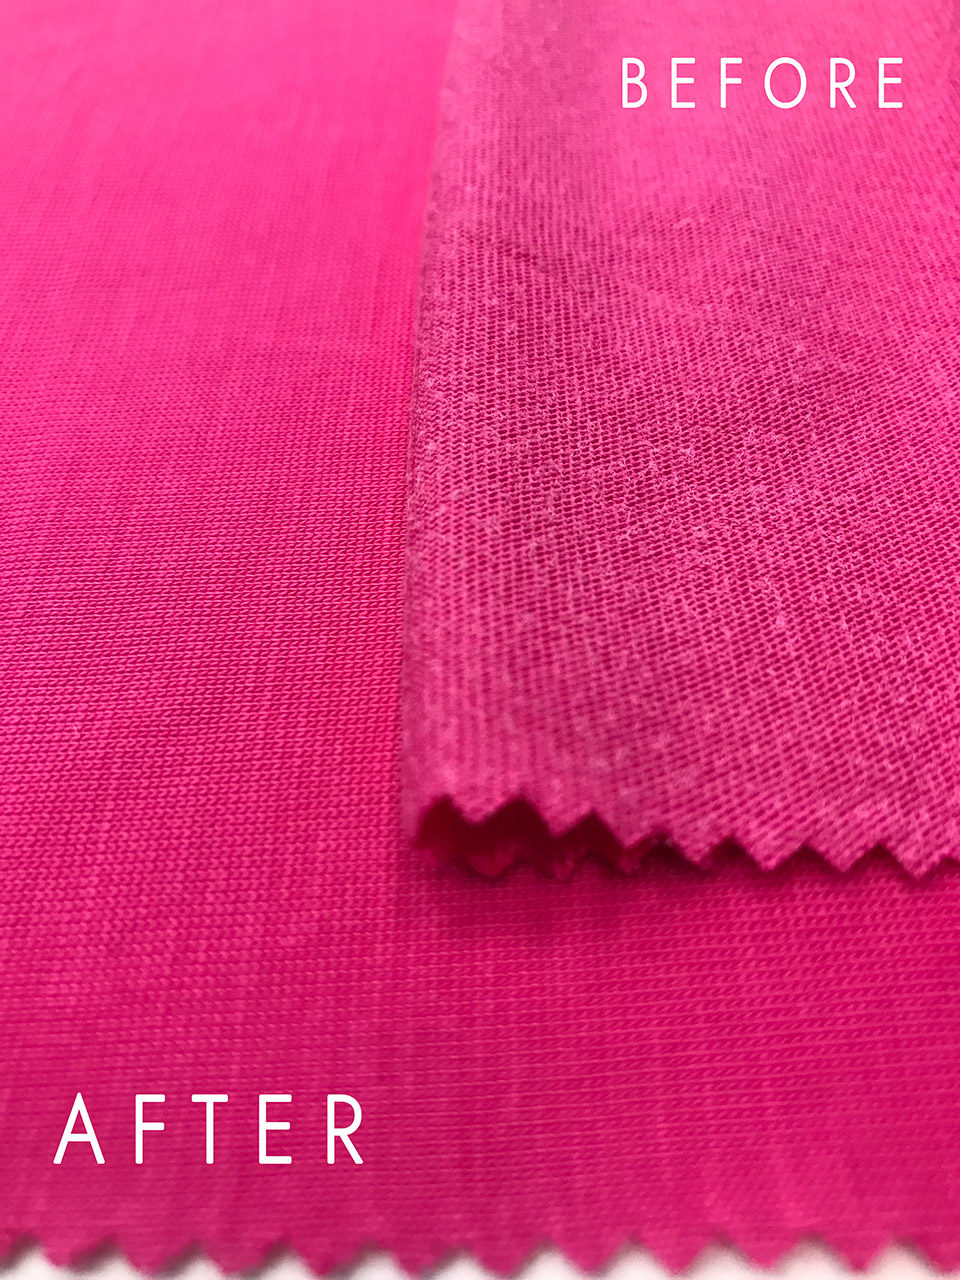 aquaria fabric sample before and after treatment